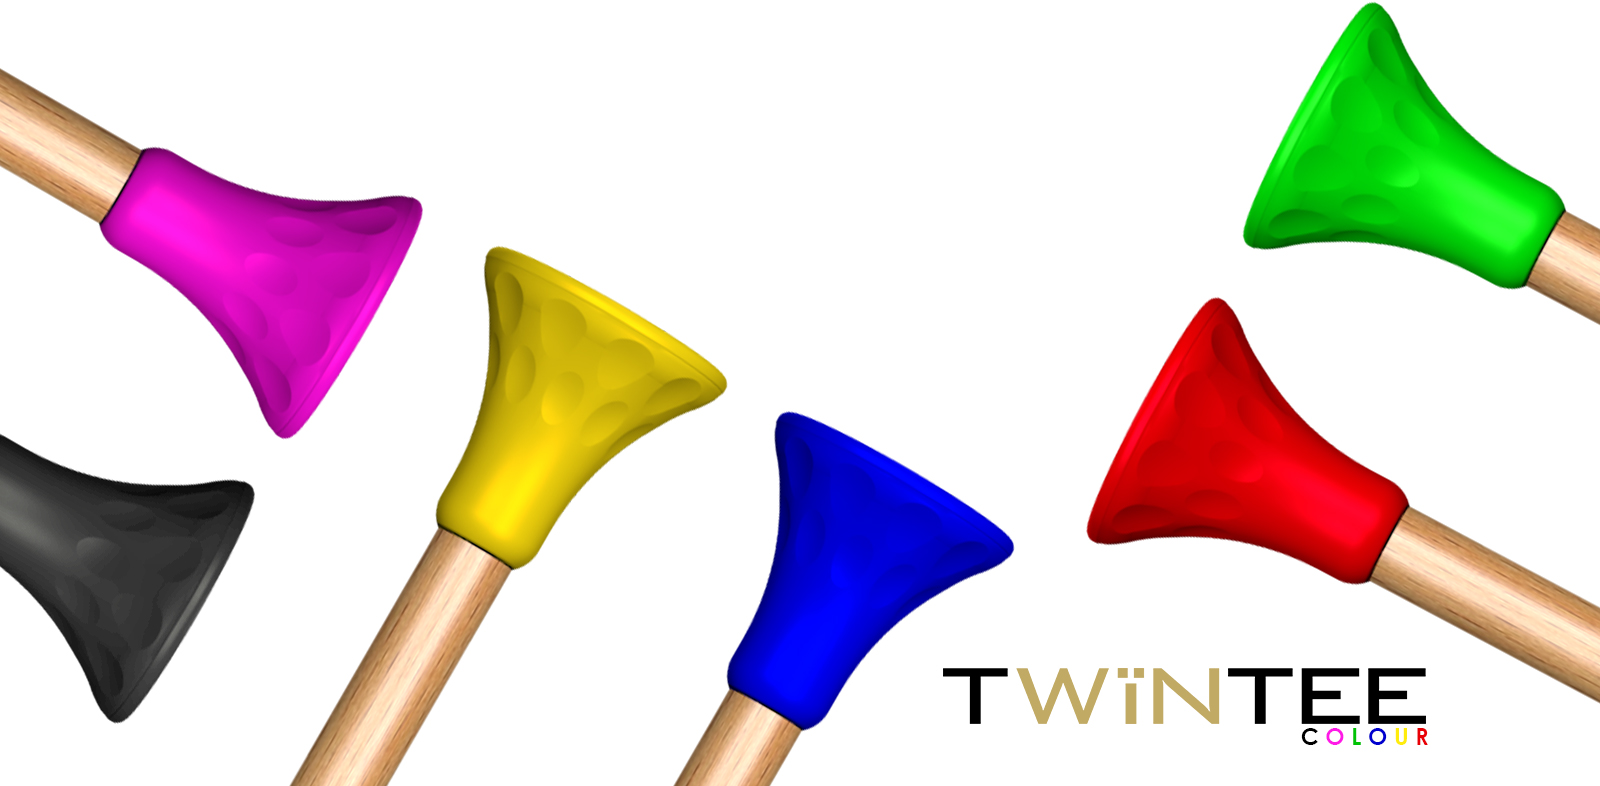 Twintee Colour Golftee © 2015